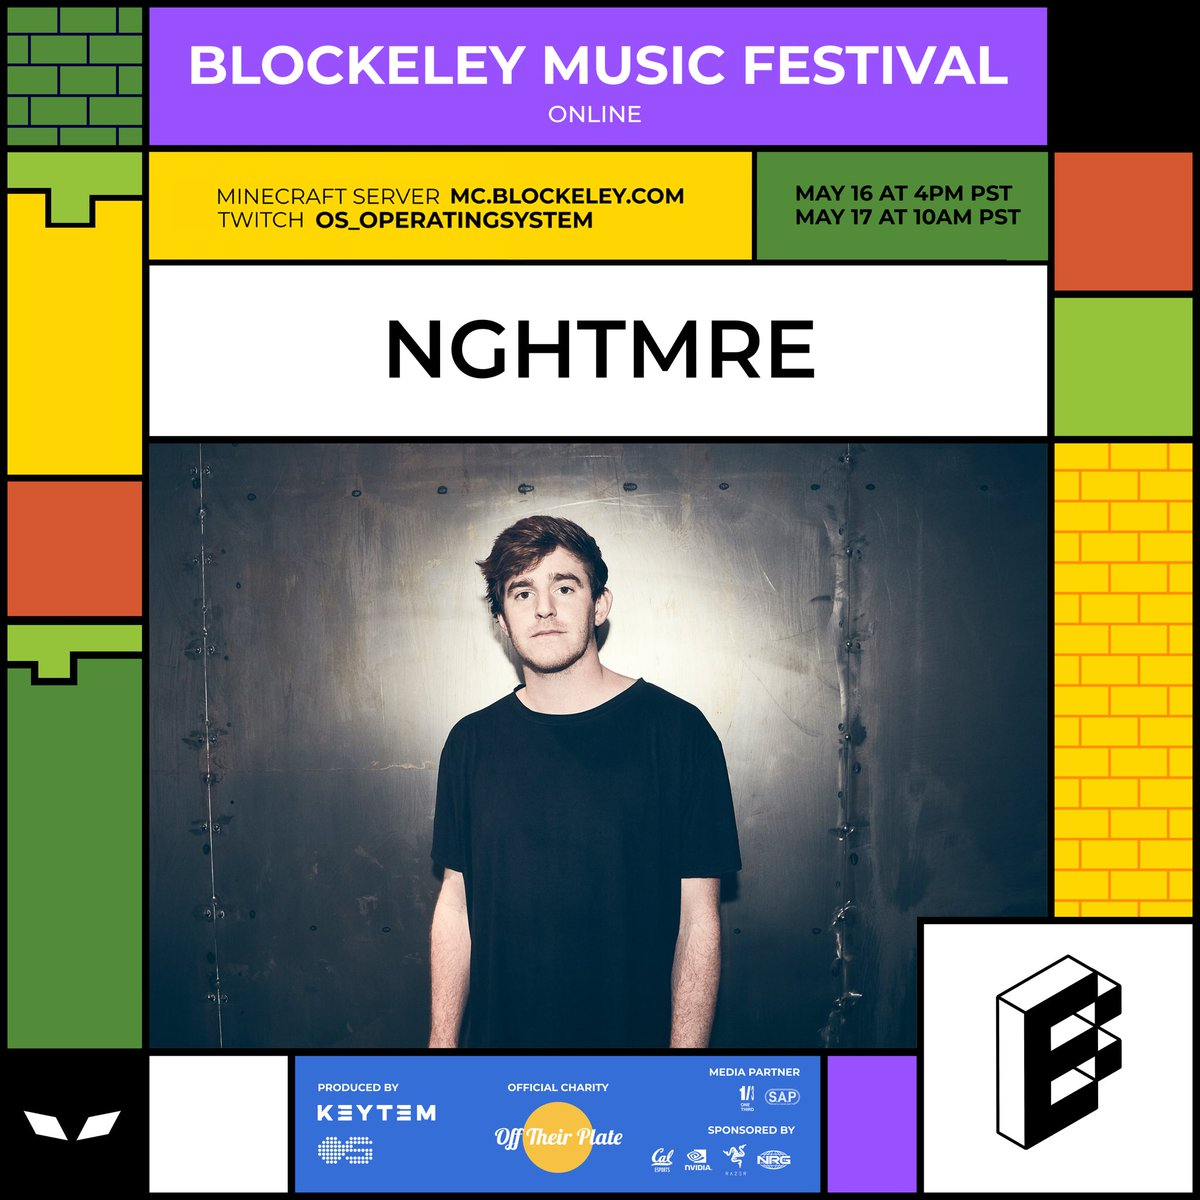 @NGHTMRE IS ABOUT TO POP TF OFF AT BLOCKELEY MUSIC FESTIVAL! MINECRAFT IP: MC.BLOCKELEY.COM LIVESTREAM: twitch.tv/os_operatingsy…